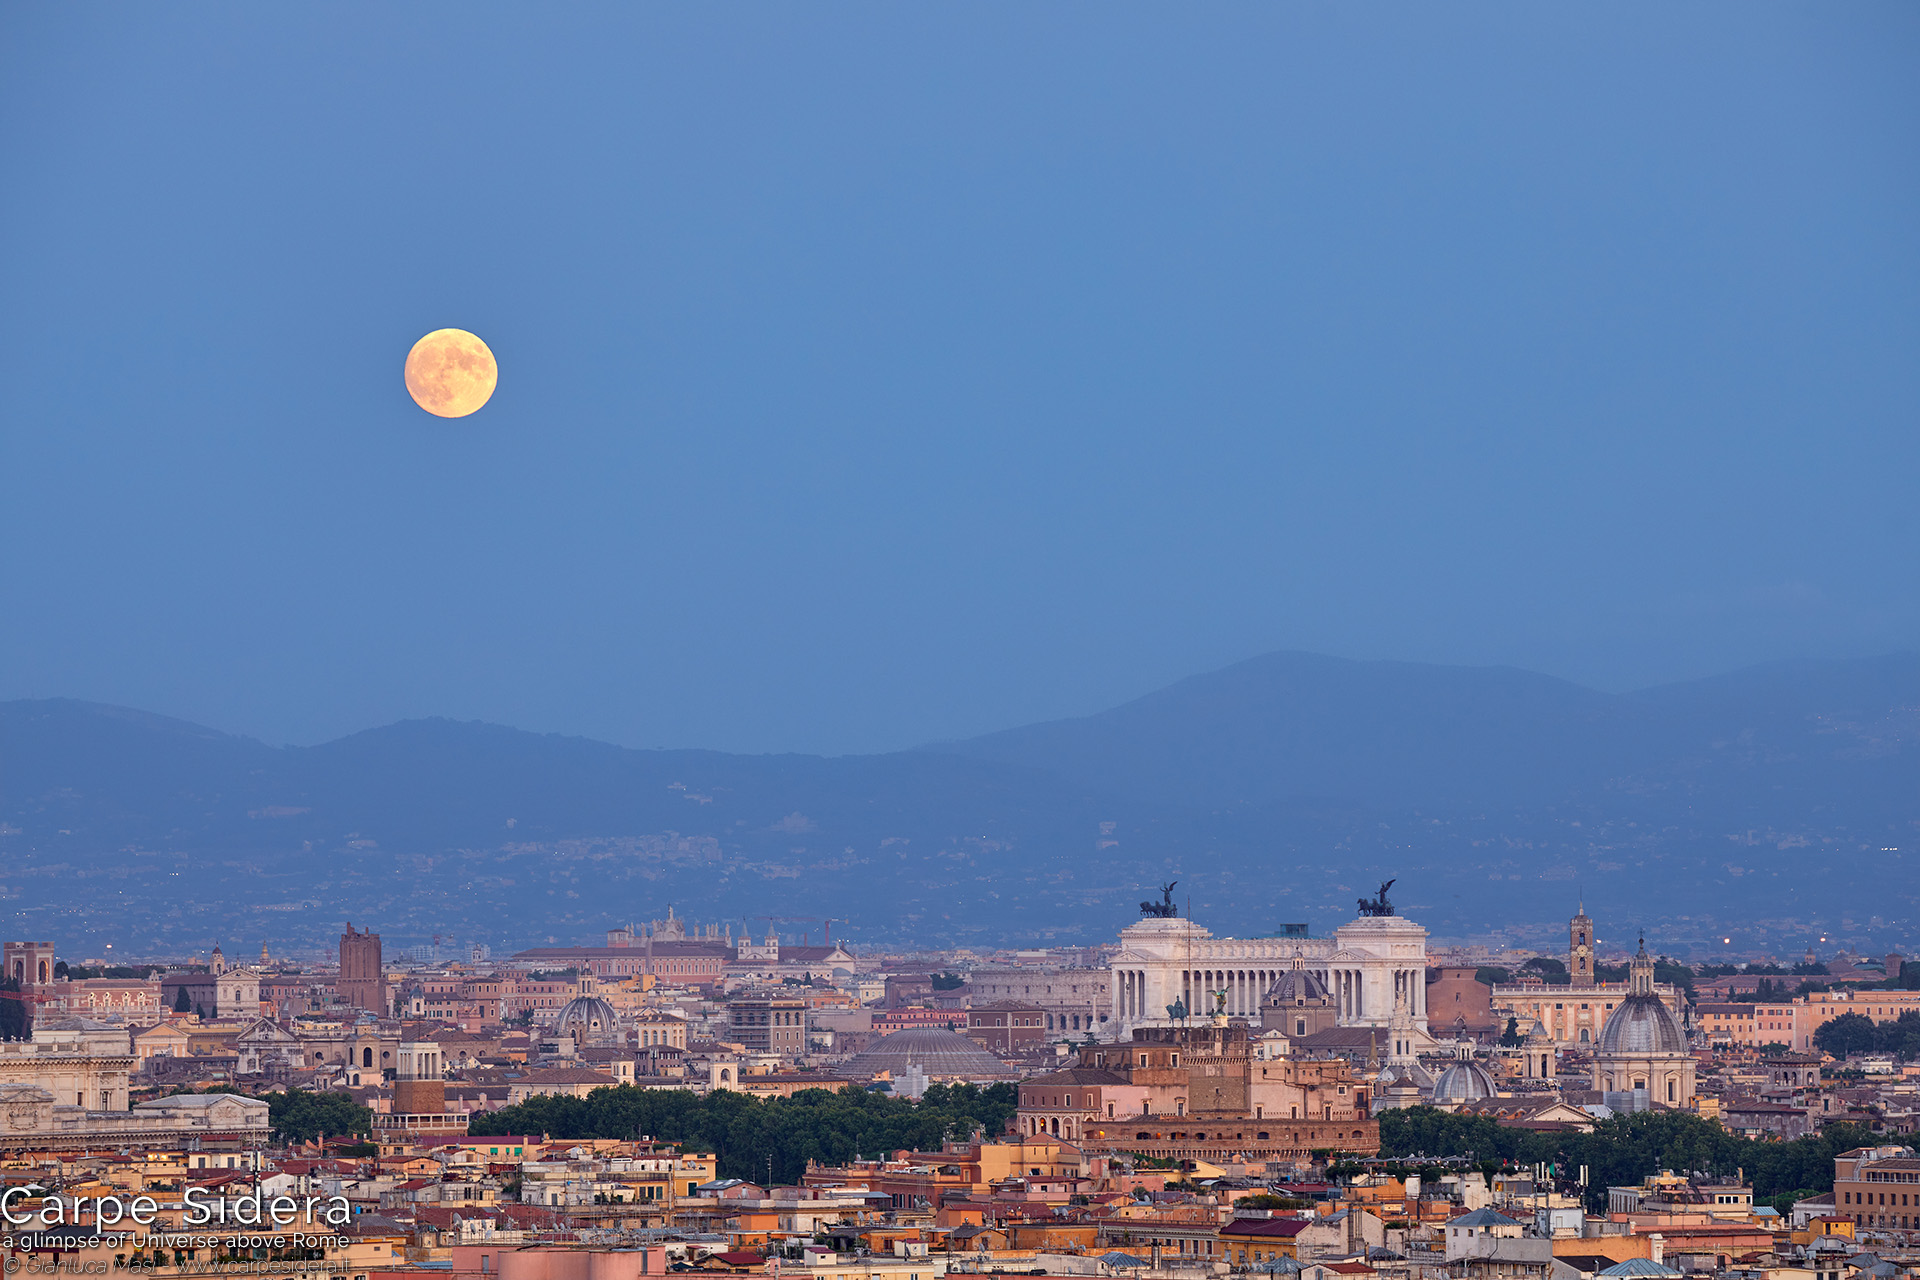 18. The summer full Moon rises above the Eternal City, at sunset.